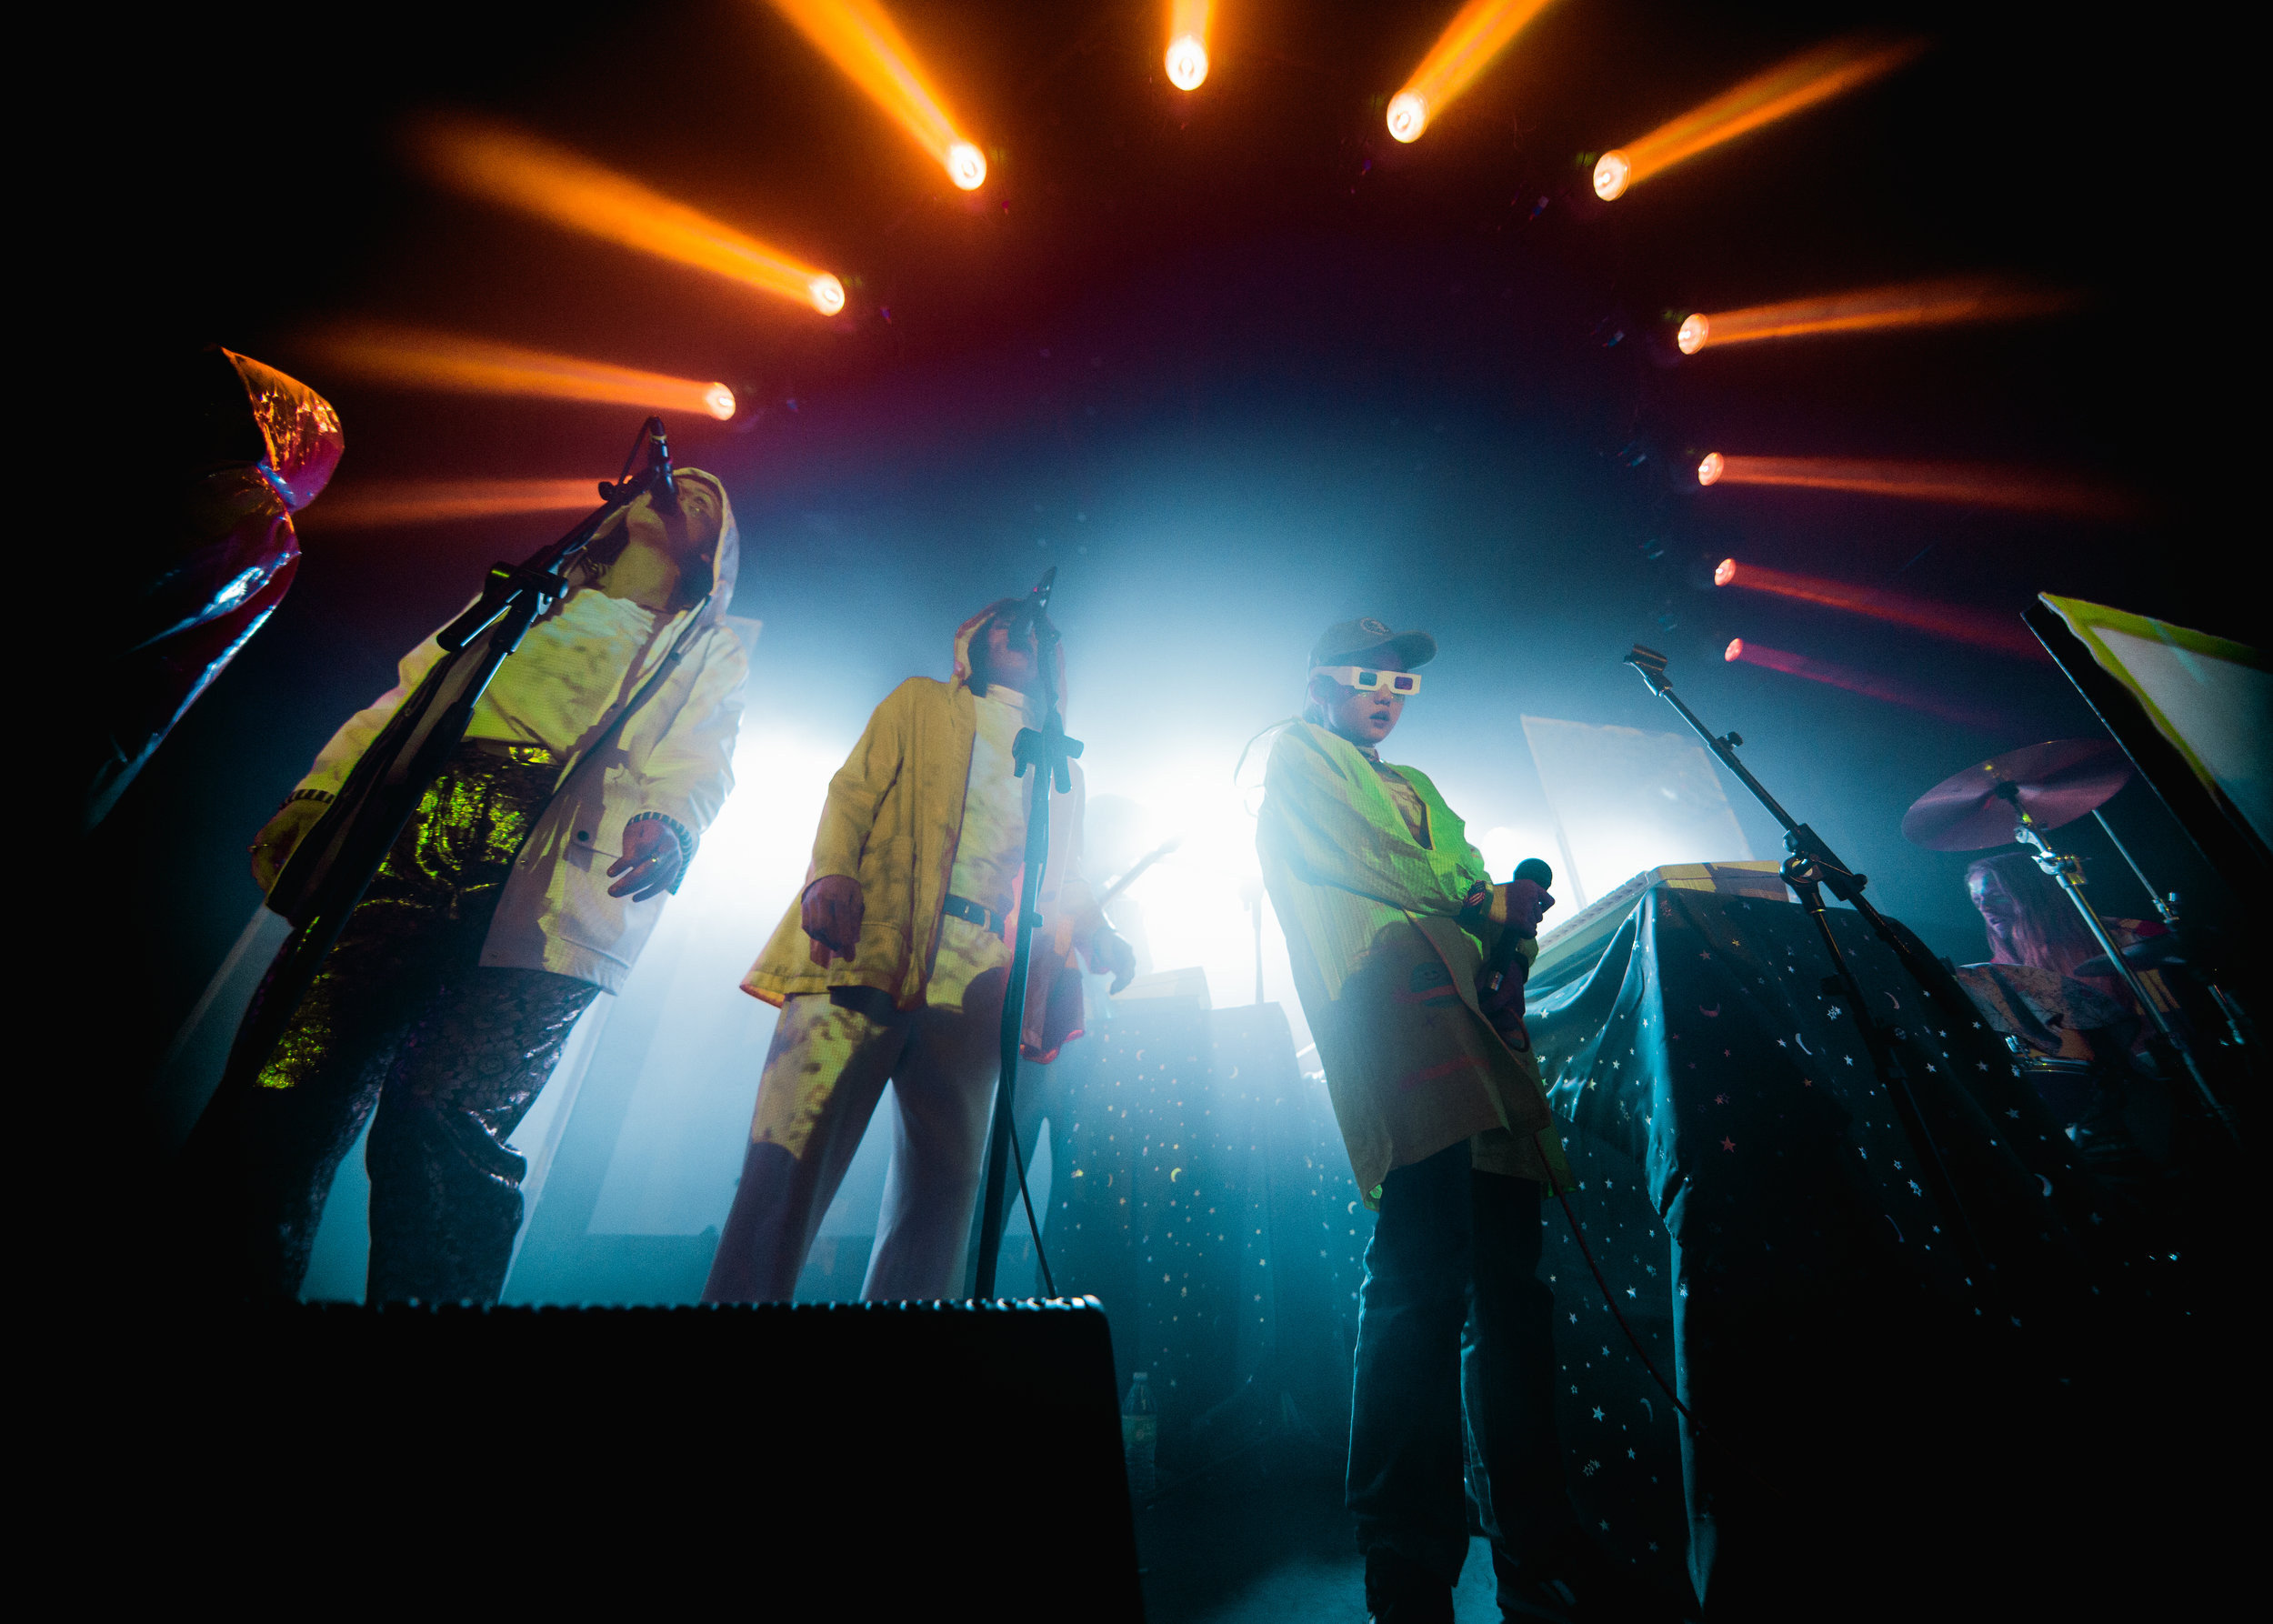 kirby-gladstein-photography-superorganism-concert-moroccan-lounge-los-angeles-6